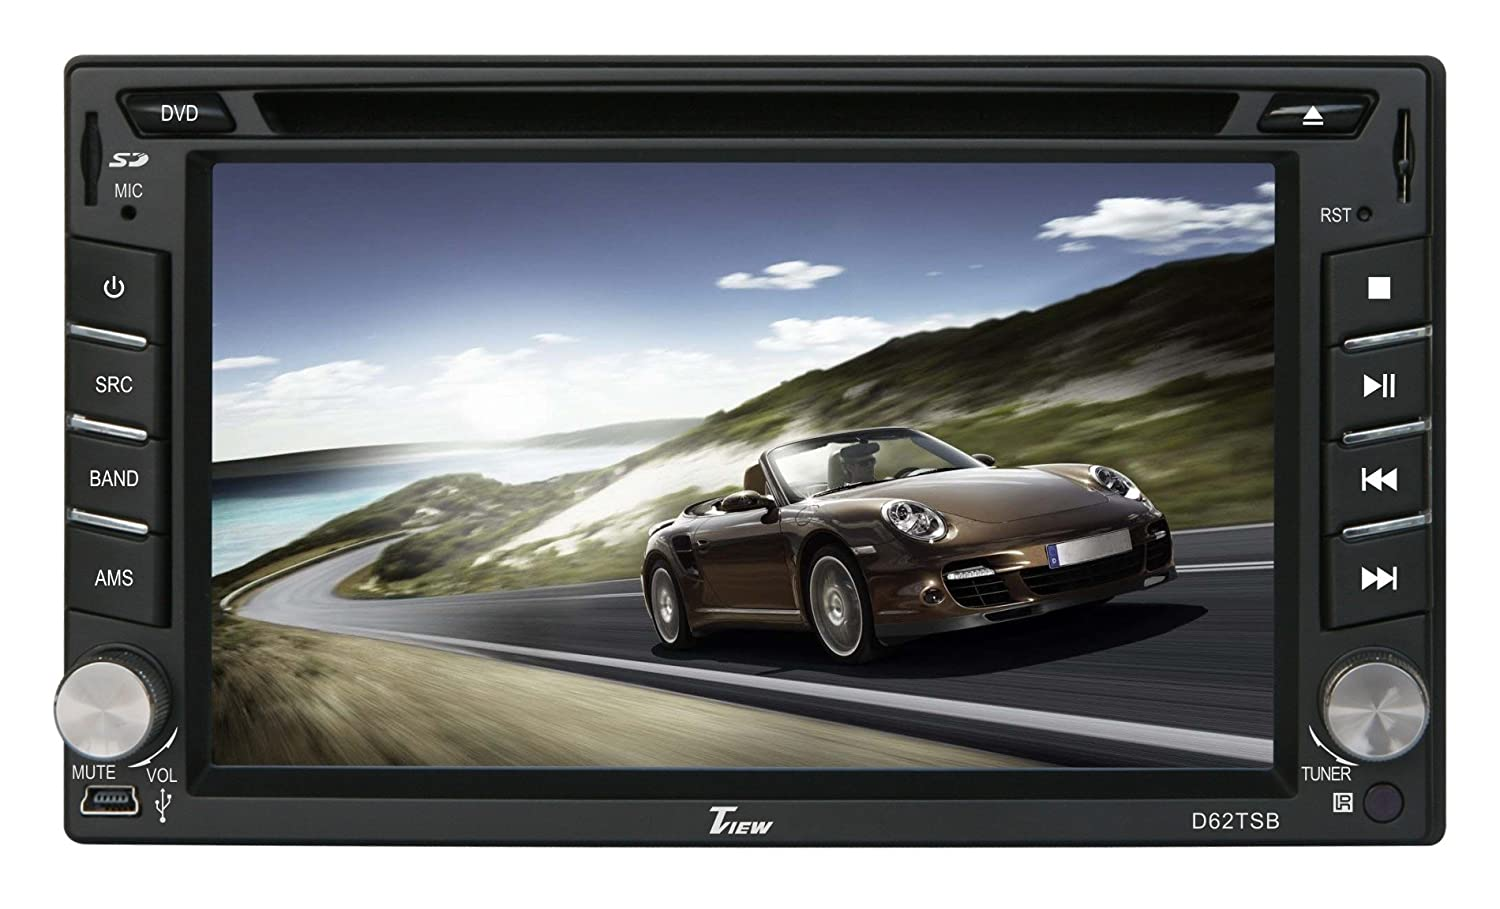 71N8 eVkMJL._SL1500_ amazon com tview d62tsb 6 2 inch double din touch screen with tview d75tsb wiring harness at virtualis.co